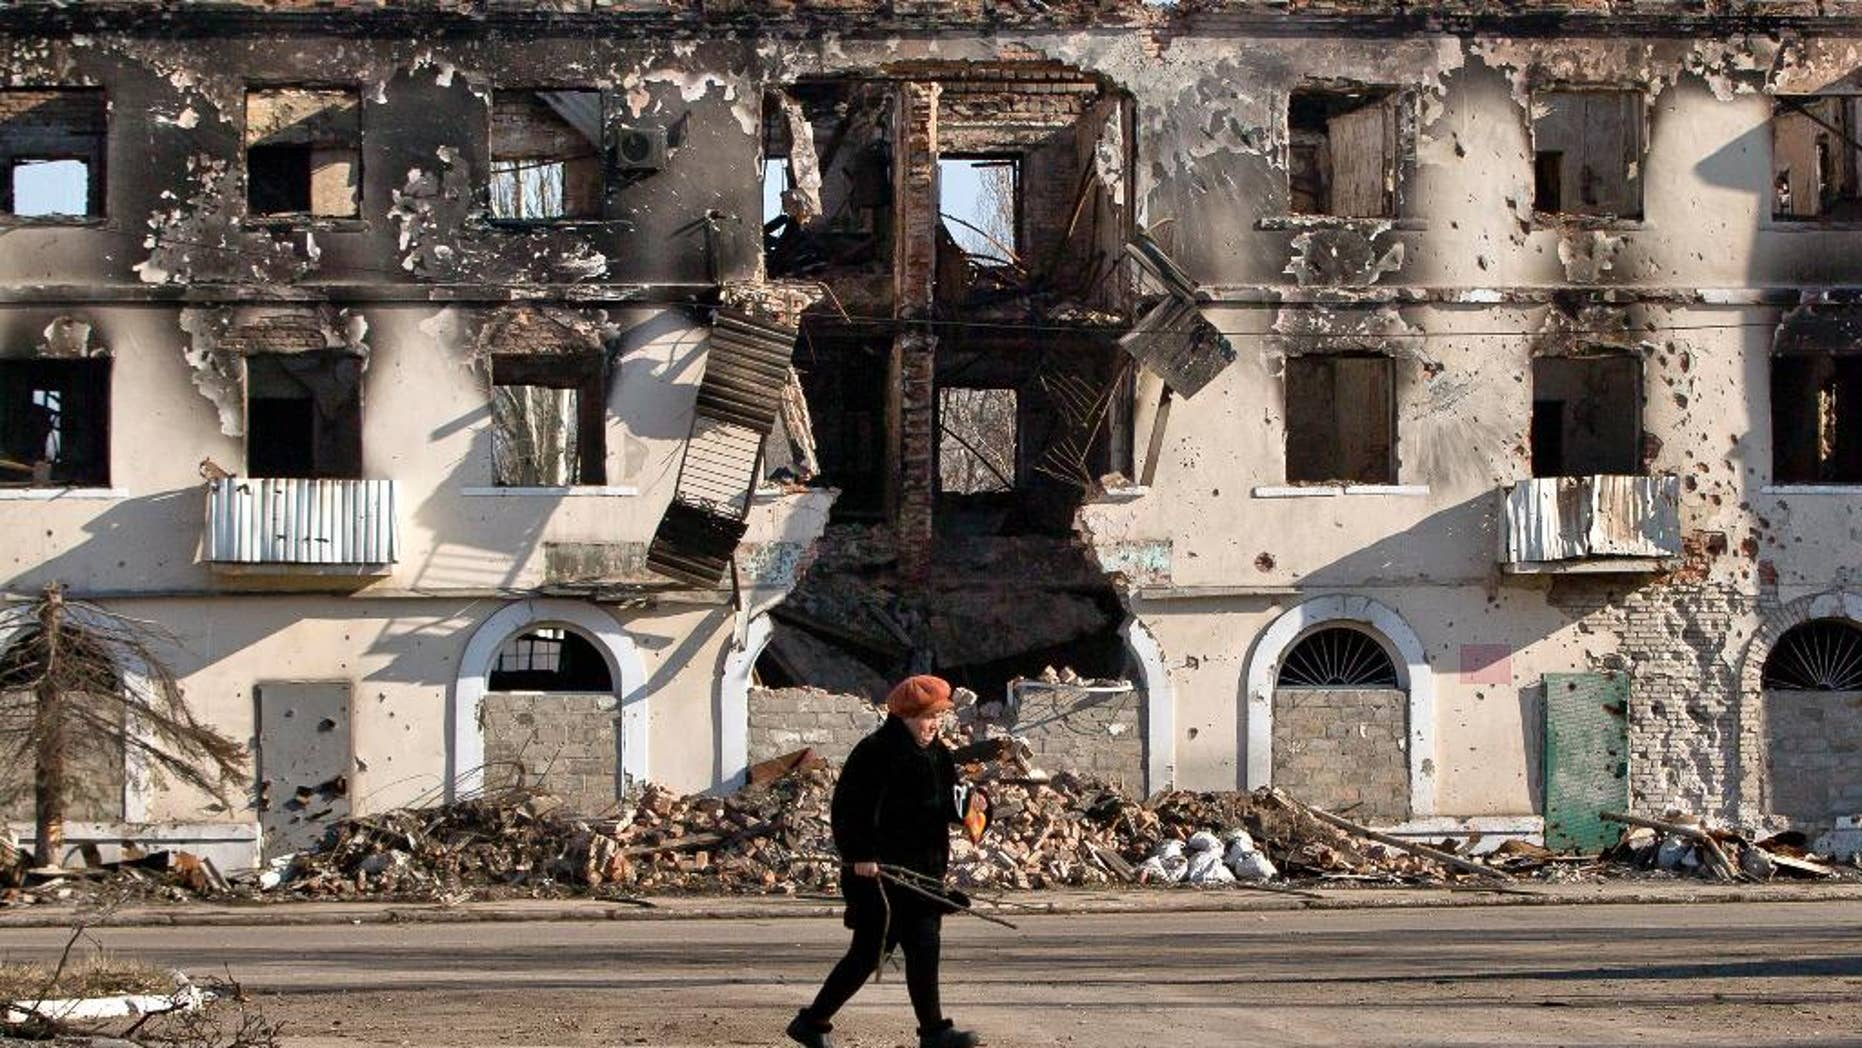 March 9, 2015: An elderly woman walks by a destroyed building in Vuhlehirsk, Ukraine.